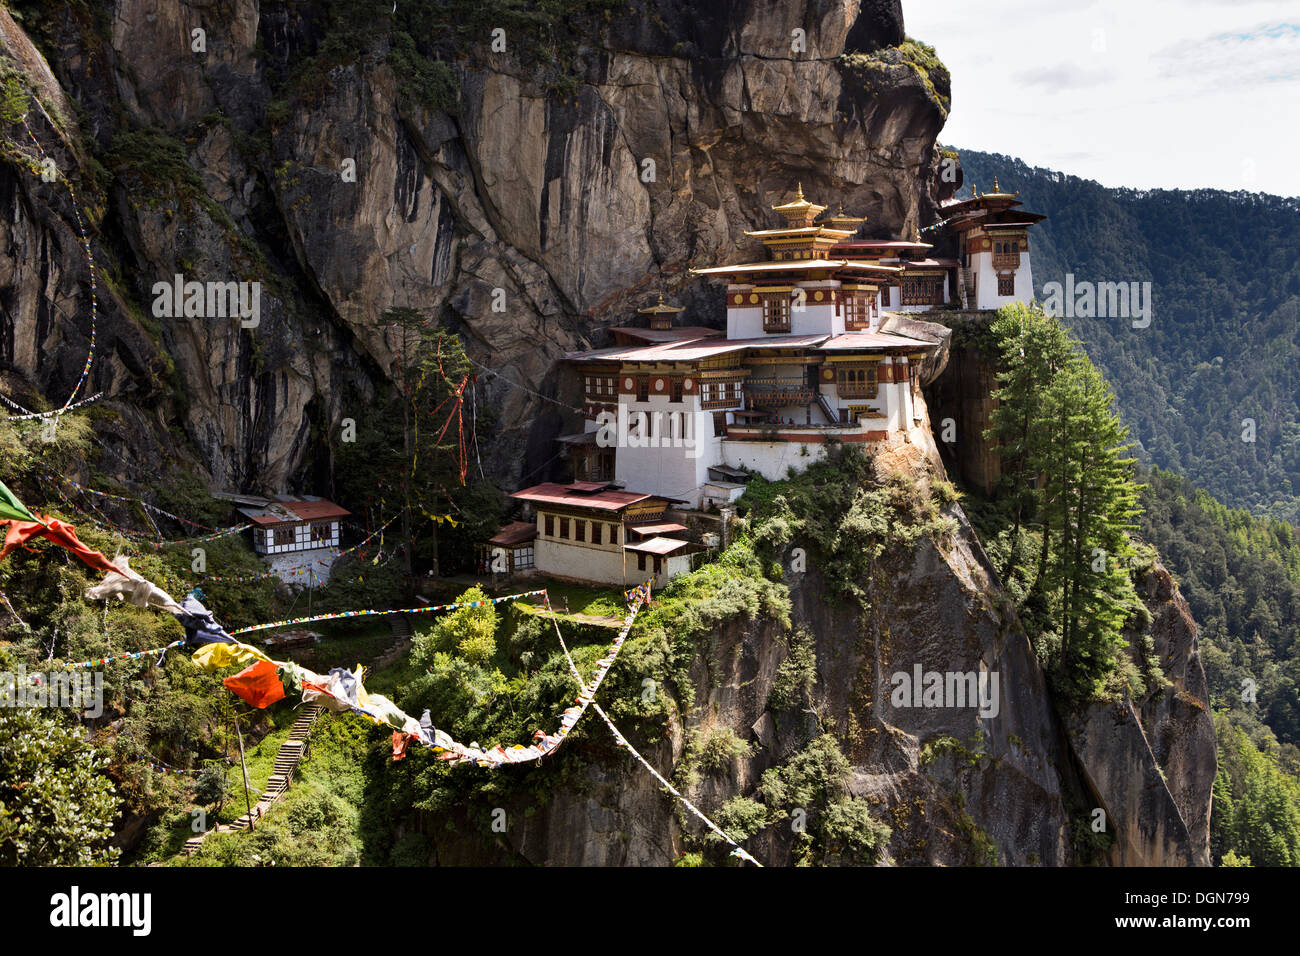 Bhutan, Paro valley, Taktsang Lhakang (Tiger's Nest) monastery clinging to cliffside - Stock Image